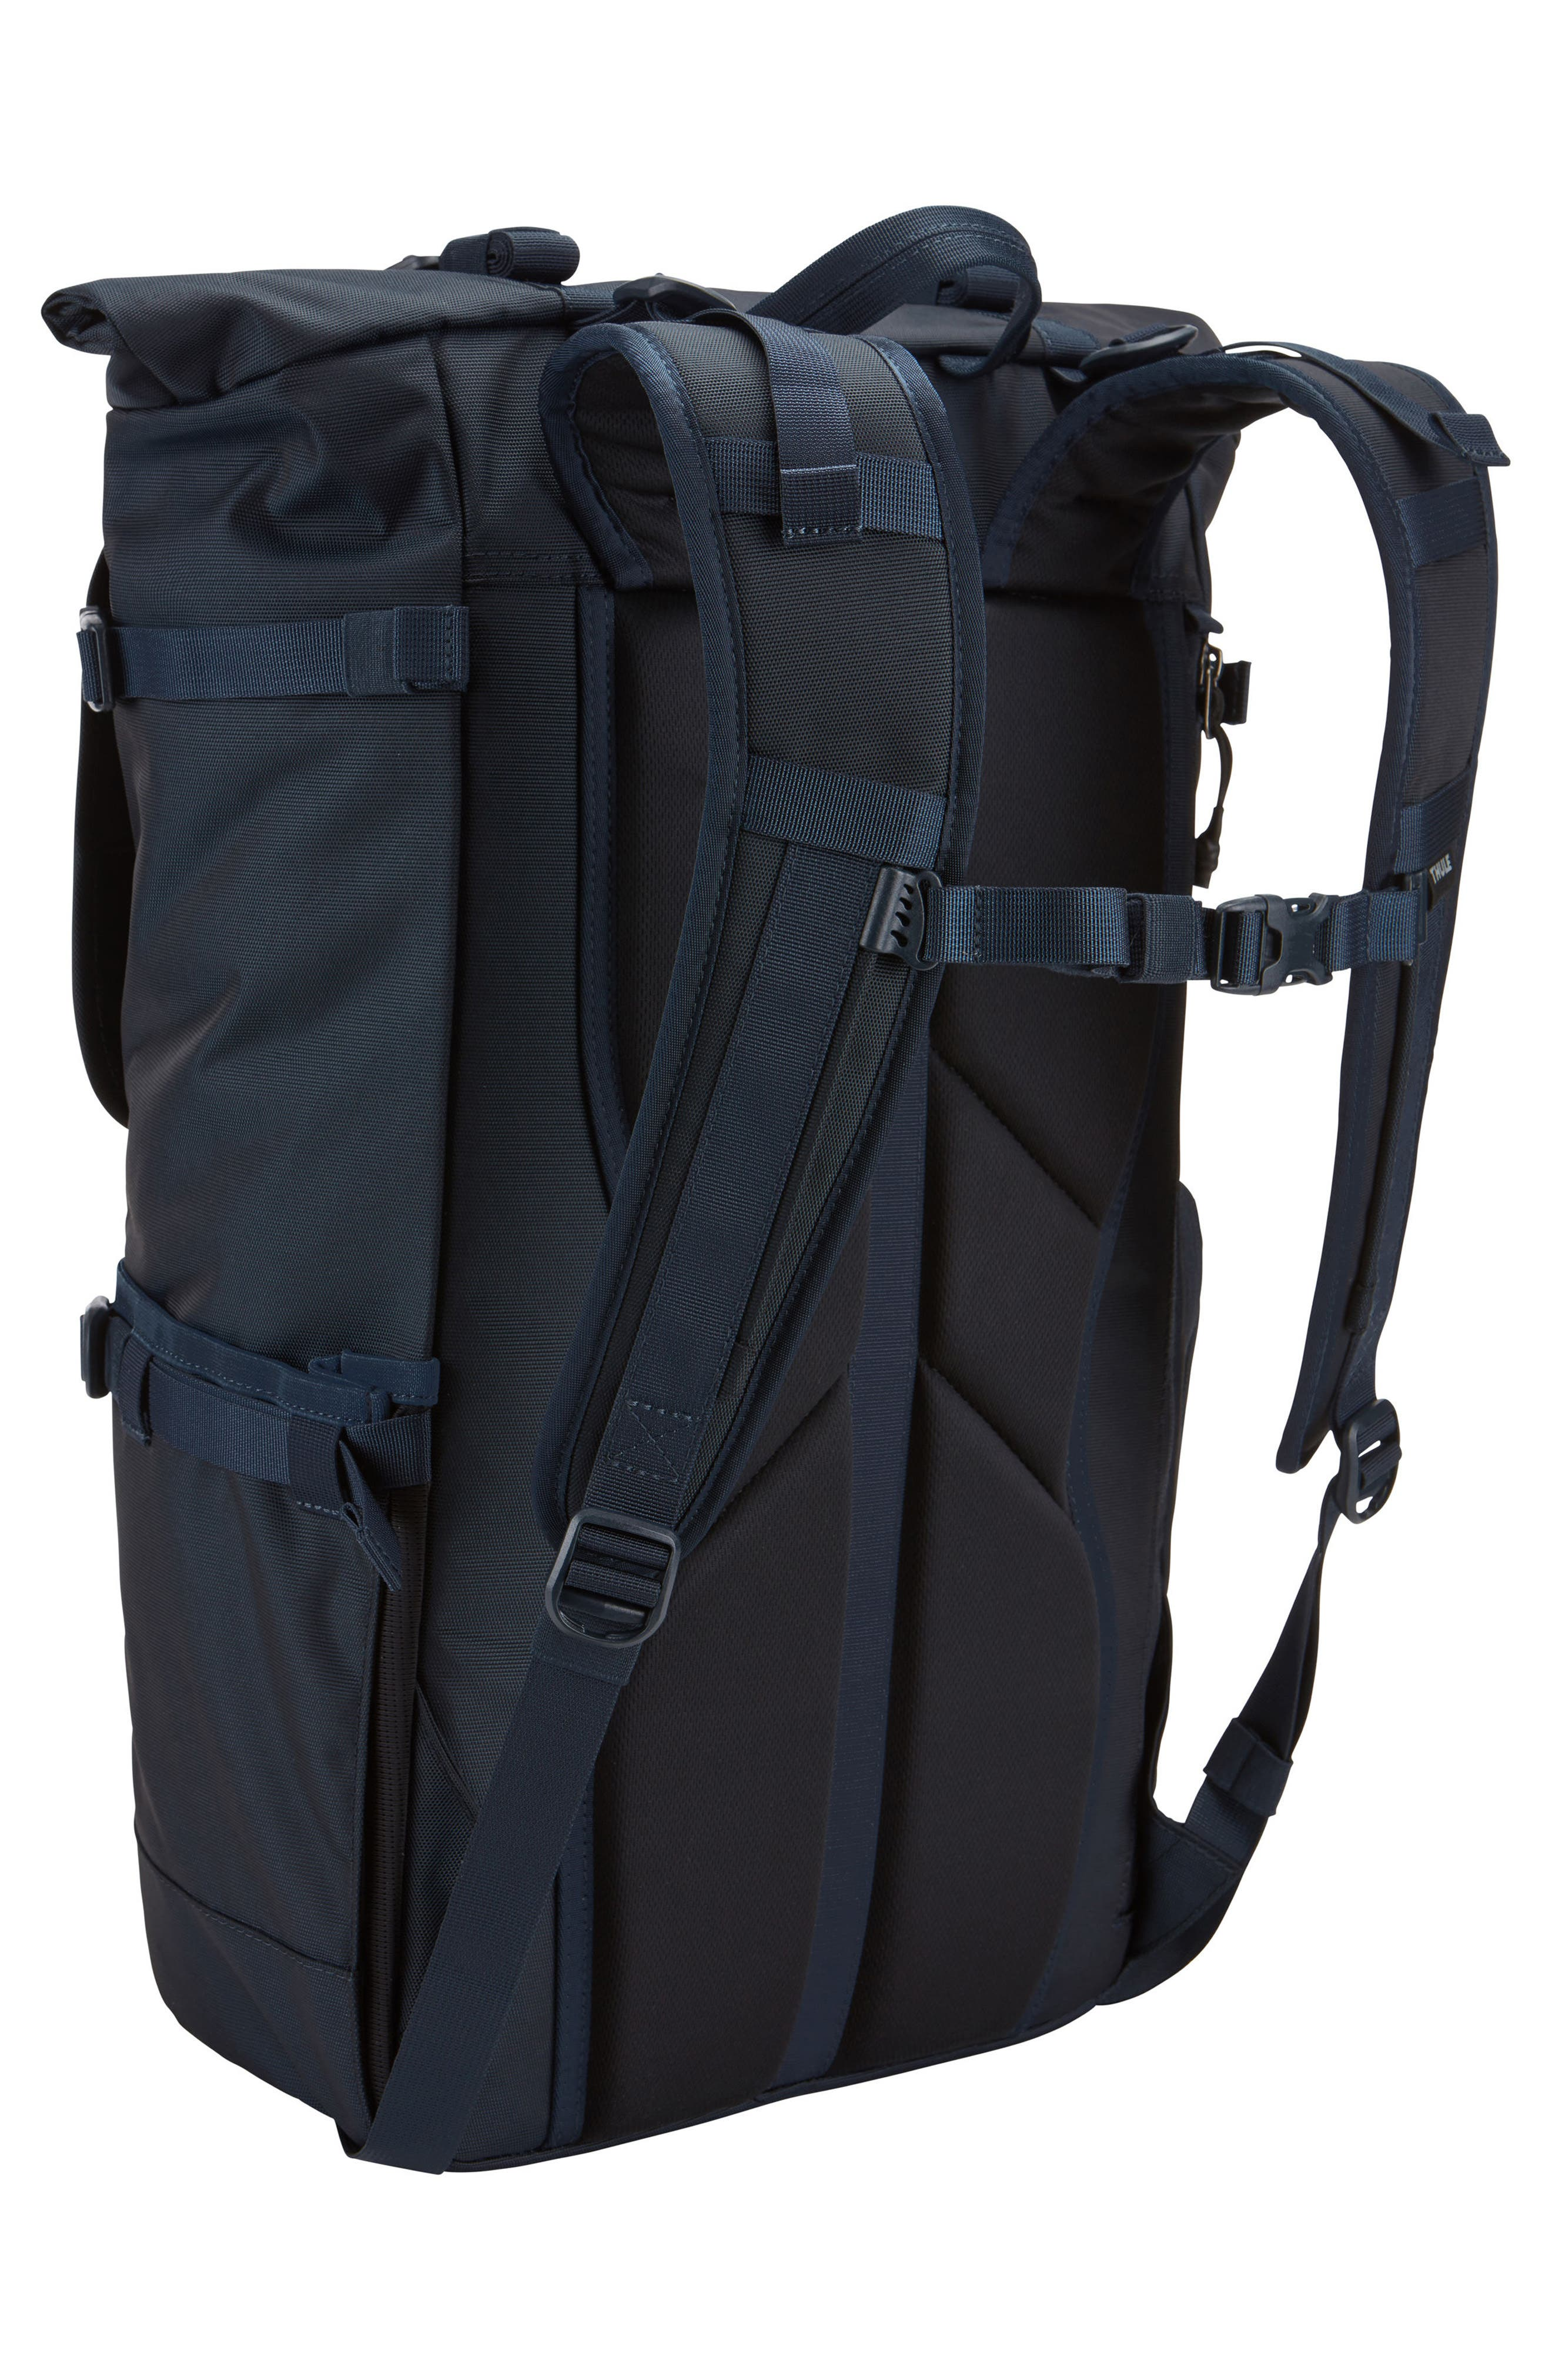 Covert DSLR Backpack,                             Alternate thumbnail 2, color,                             460